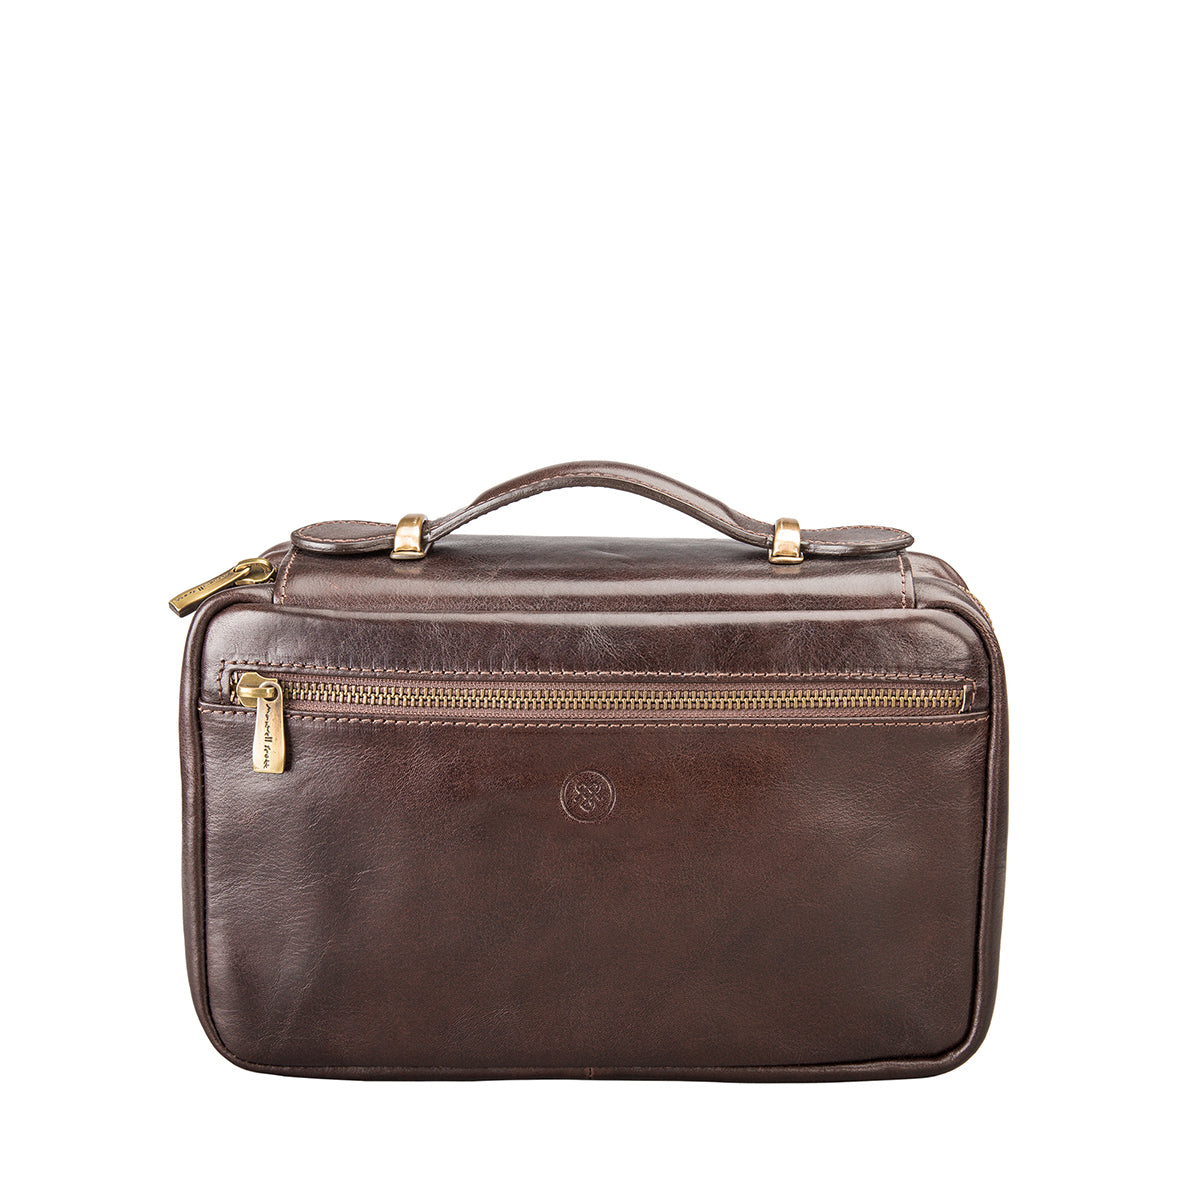 Image 1 of the 'Cascina' Chocolate Veg-Tanned Leather Makeup Case